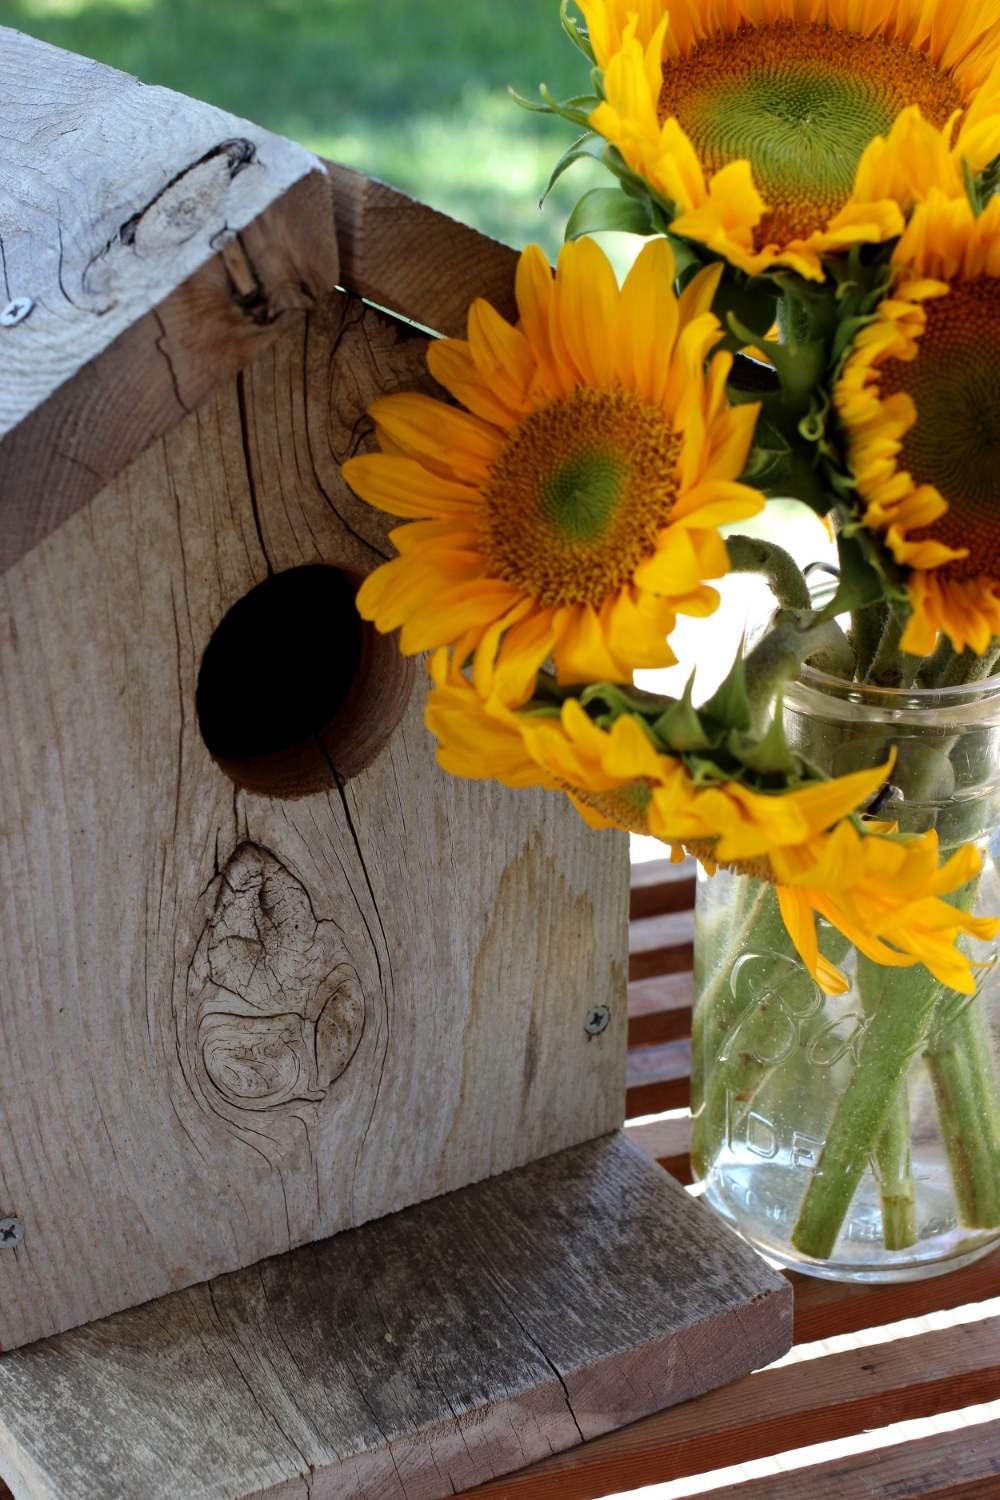 BallJar with Sunflowers.jpg